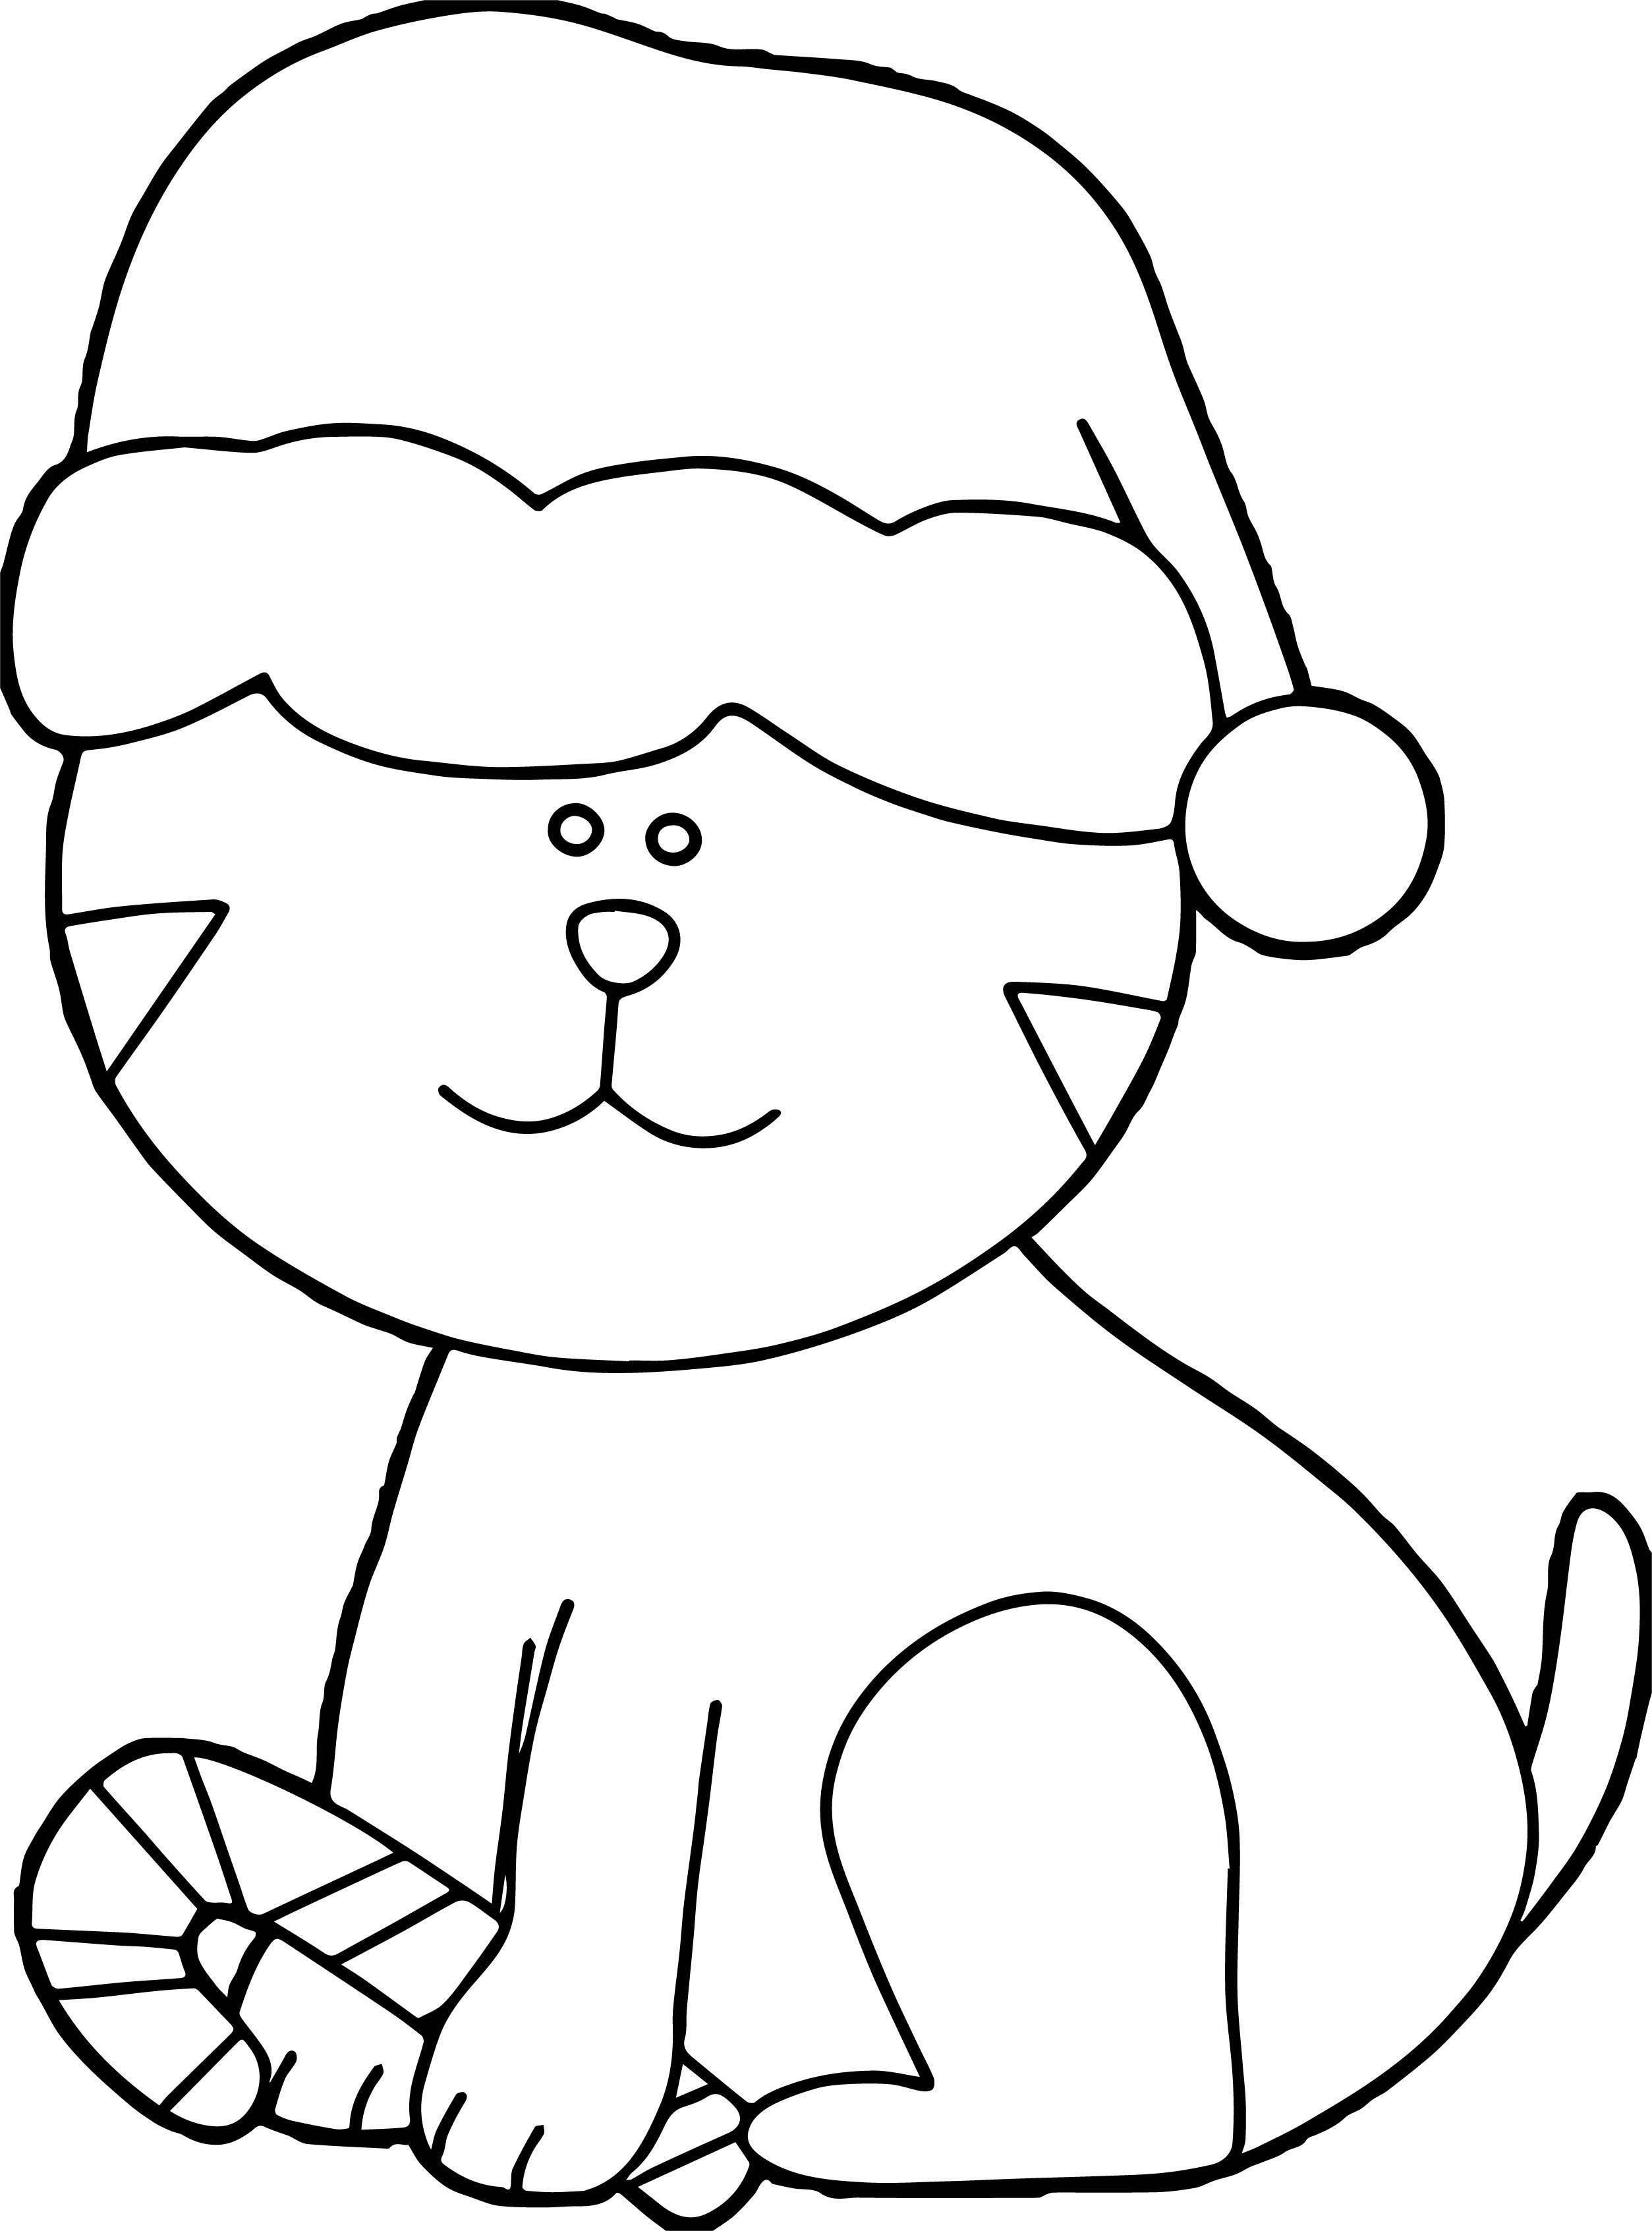 School Cat Coloring Page